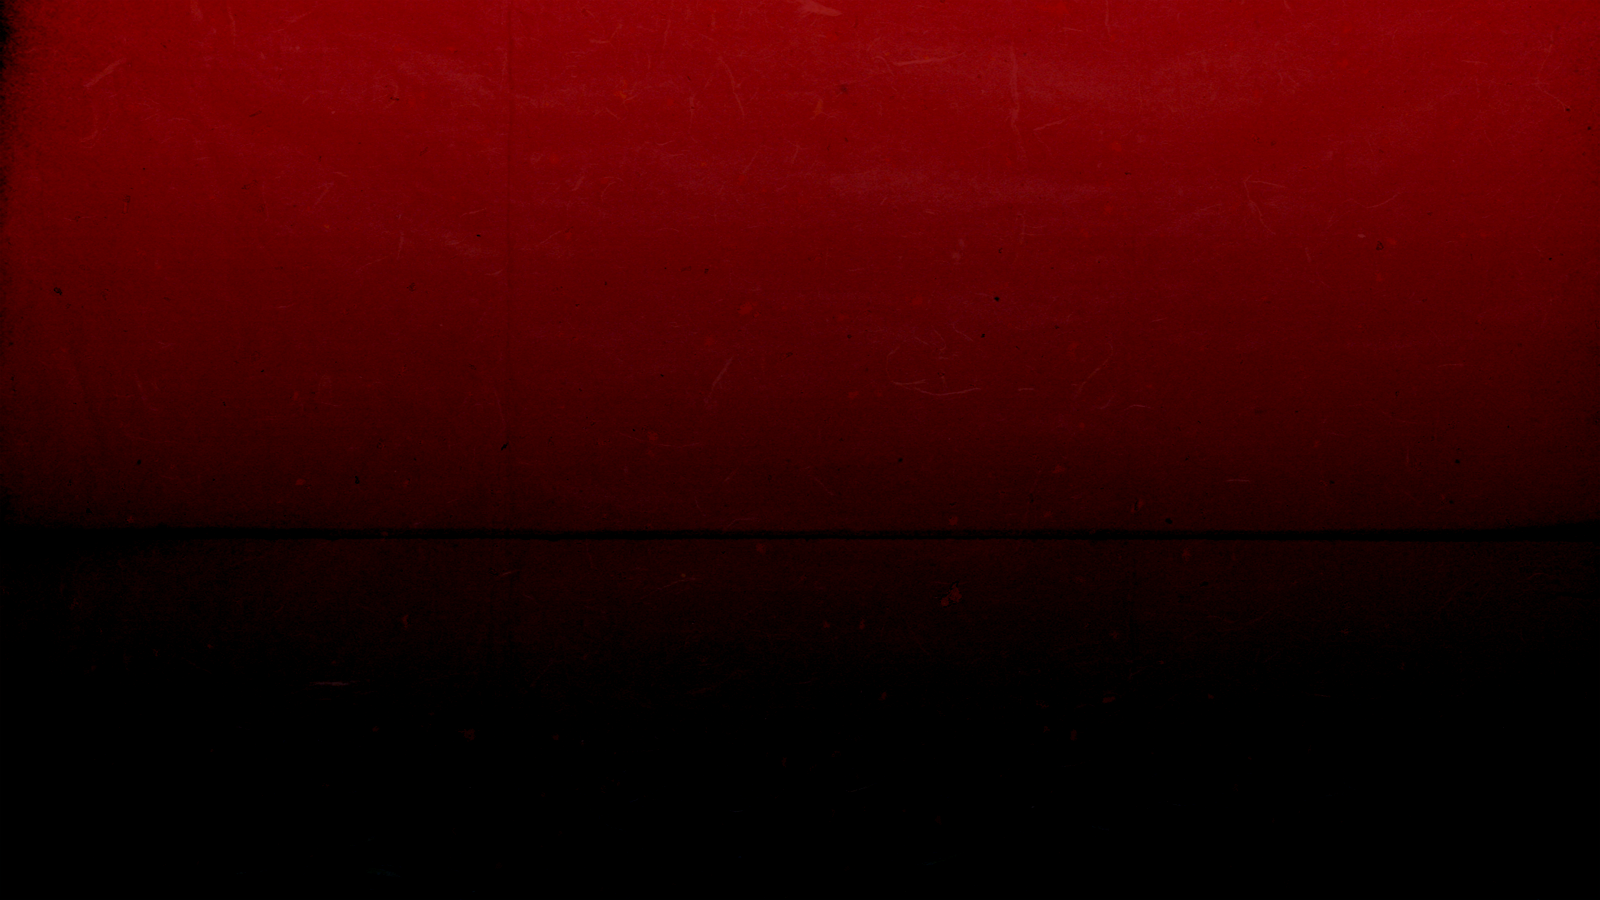 Red And Black Hd Backgrounds 5 Desktop Background ...